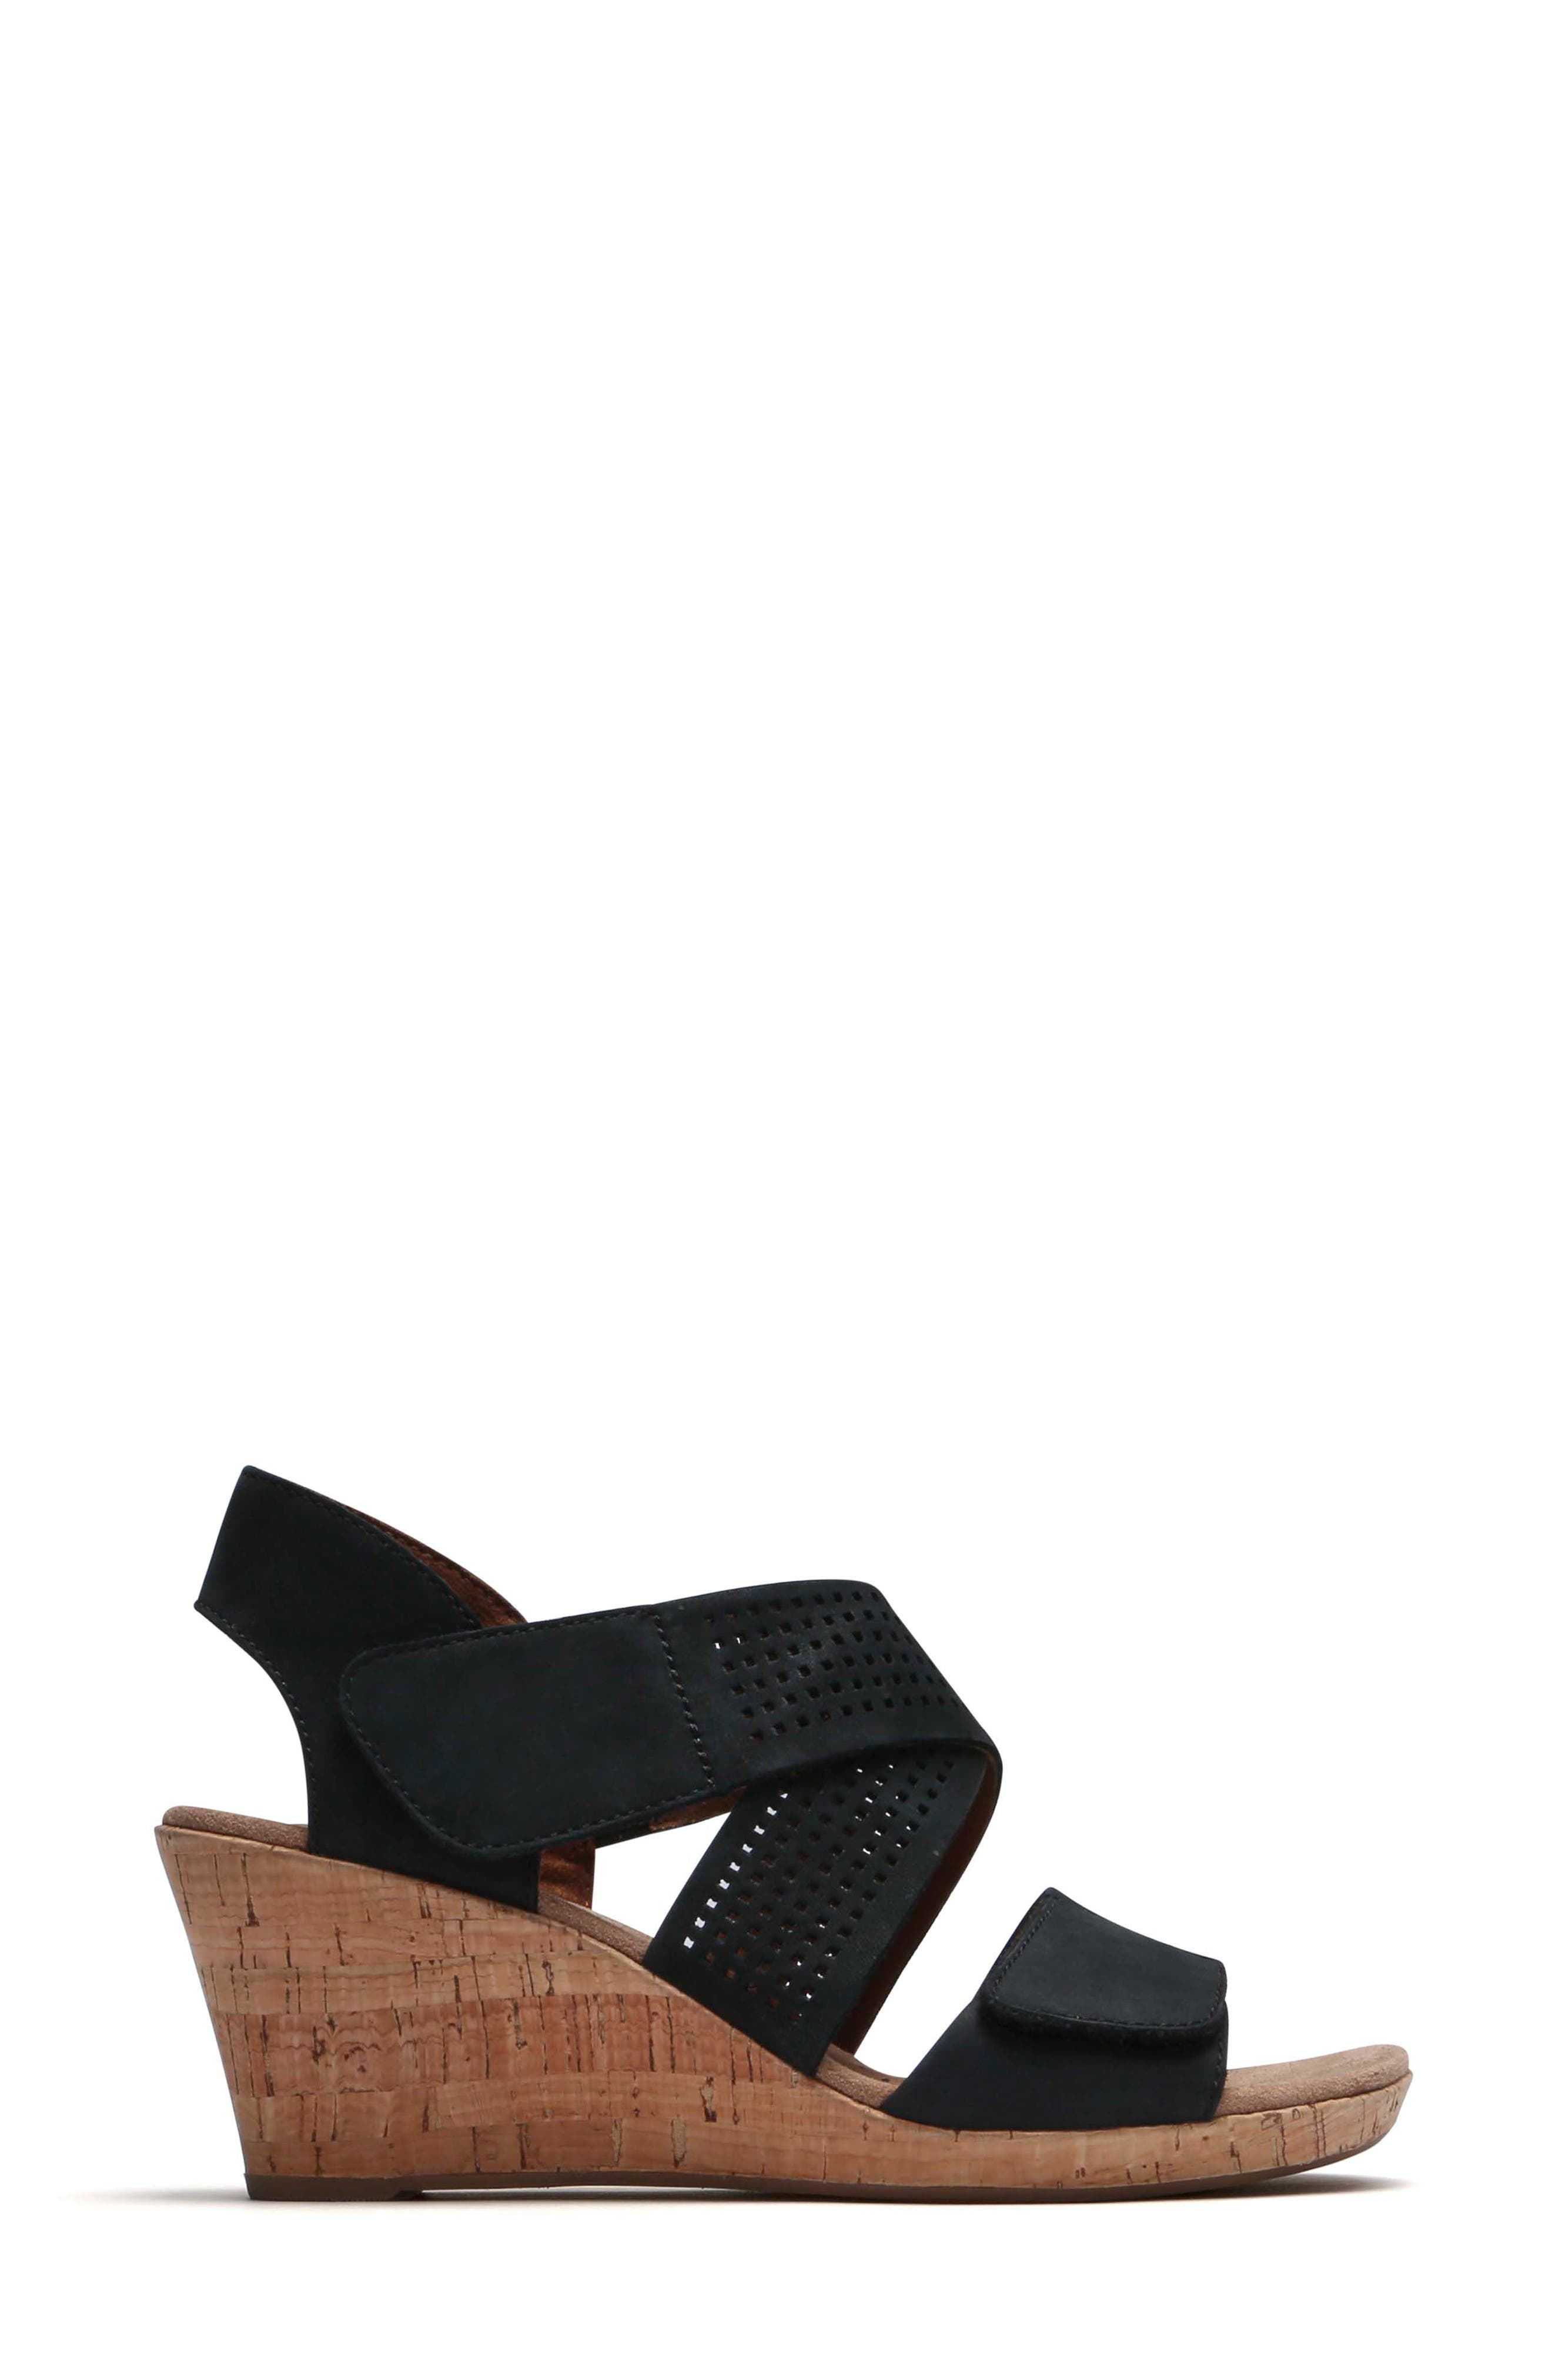 Janna Cross Strap Wedge Sandal,                             Alternate thumbnail 3, color,                             001